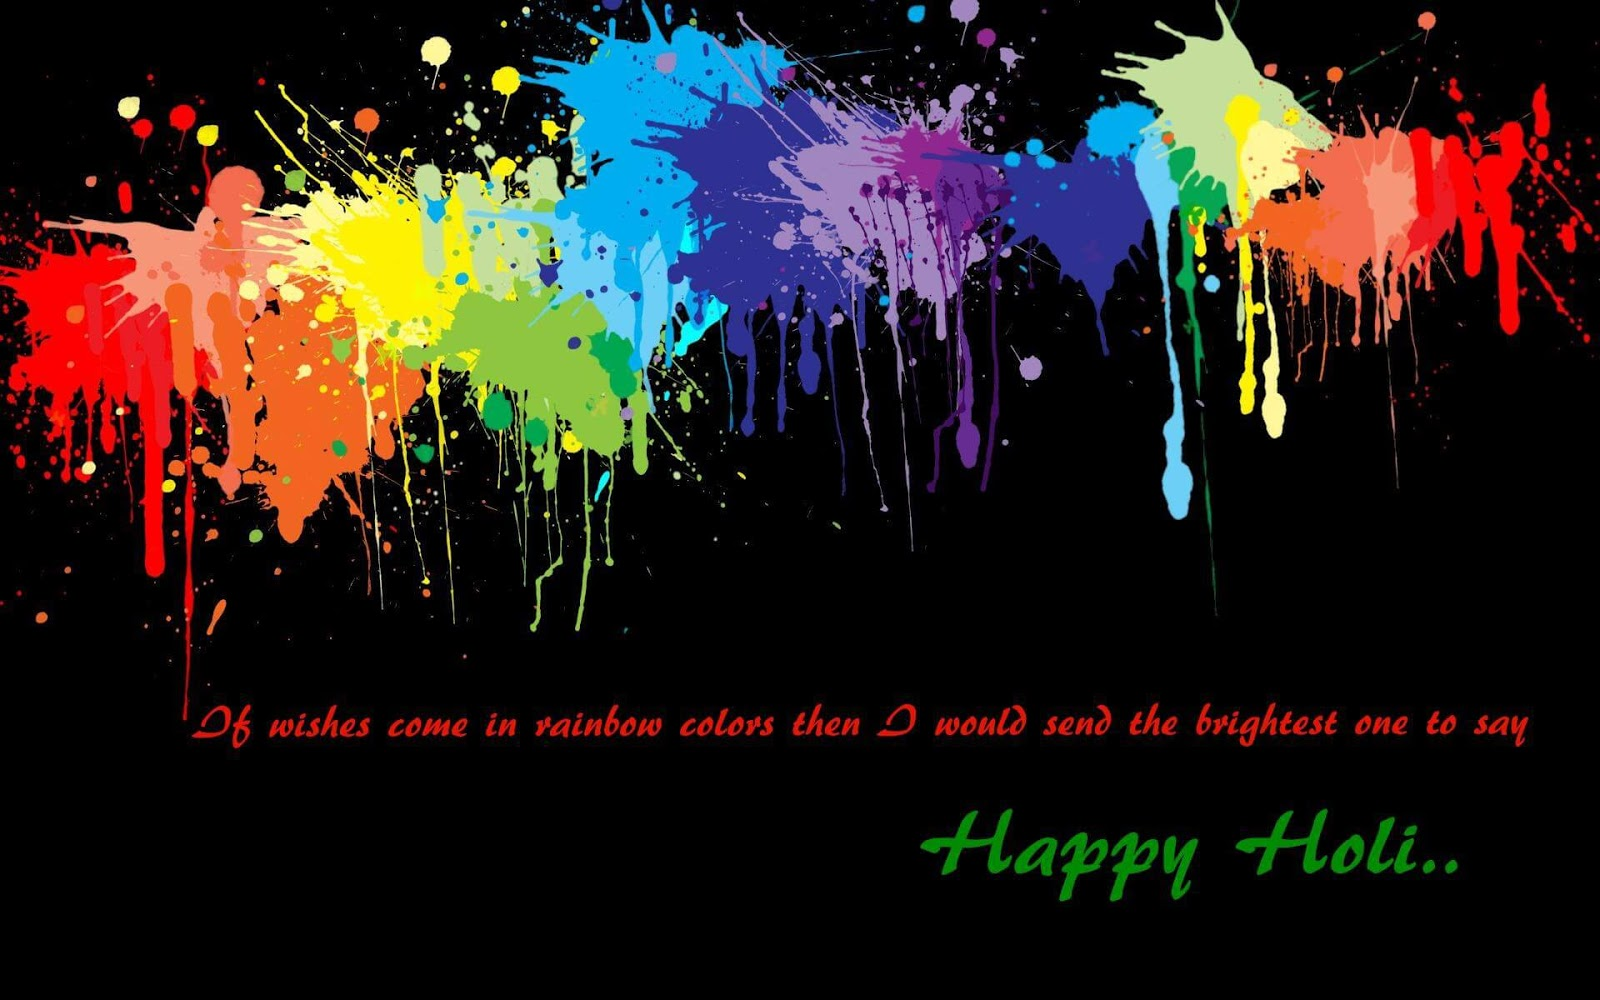 Happy Holi HD Cover Photos for Facebook